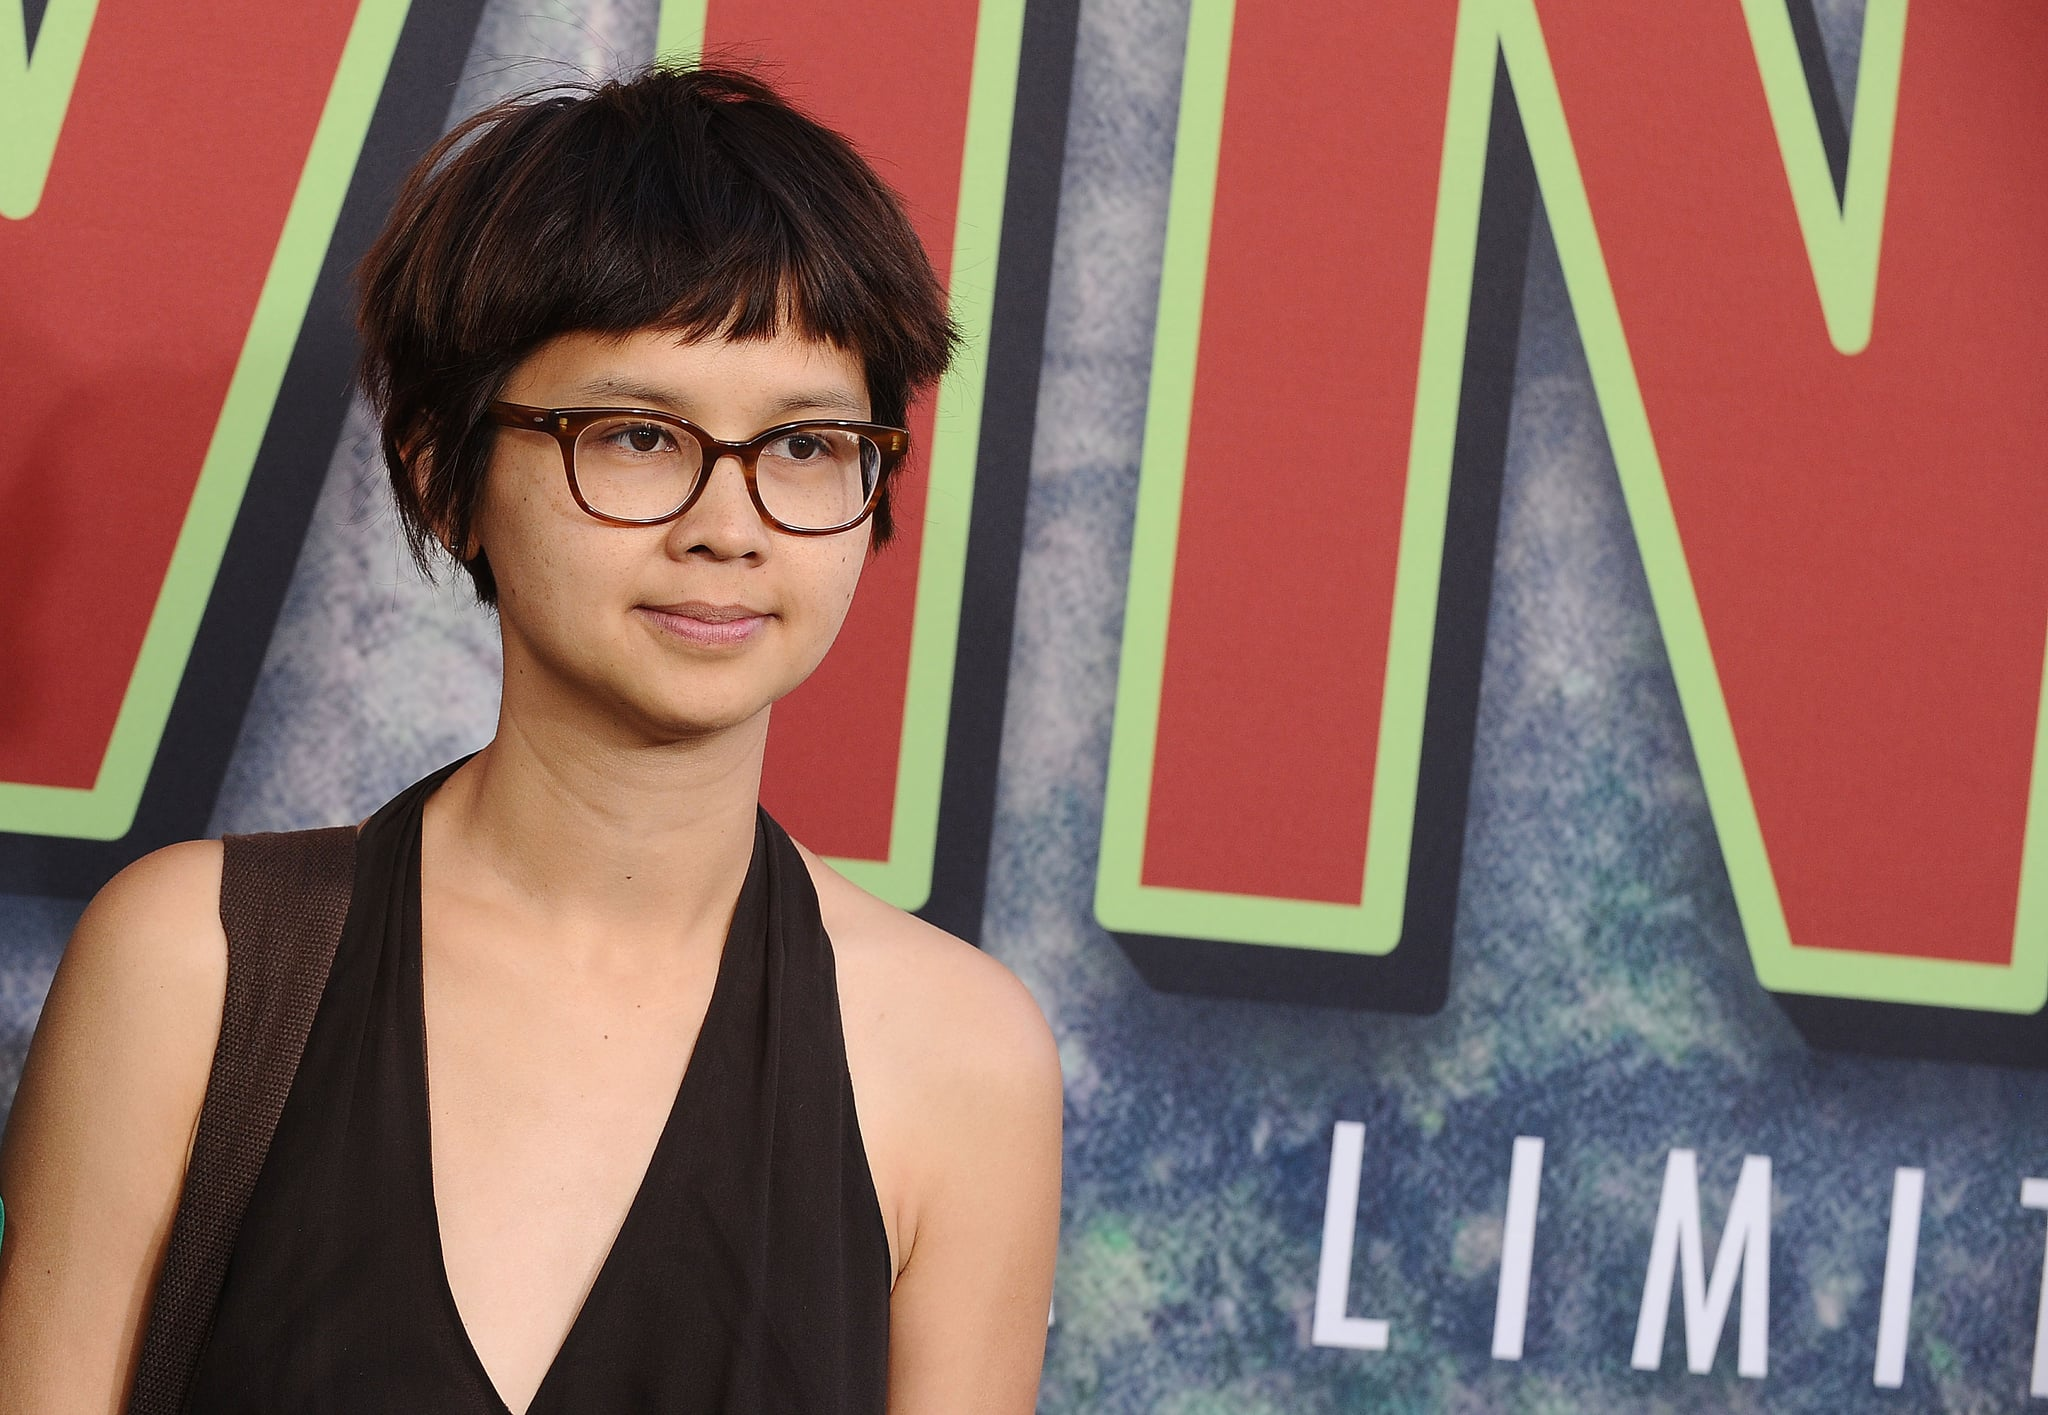 LOS ANGELES, CA - MAY 19: Actress Charlyne Yi attends the premiere of